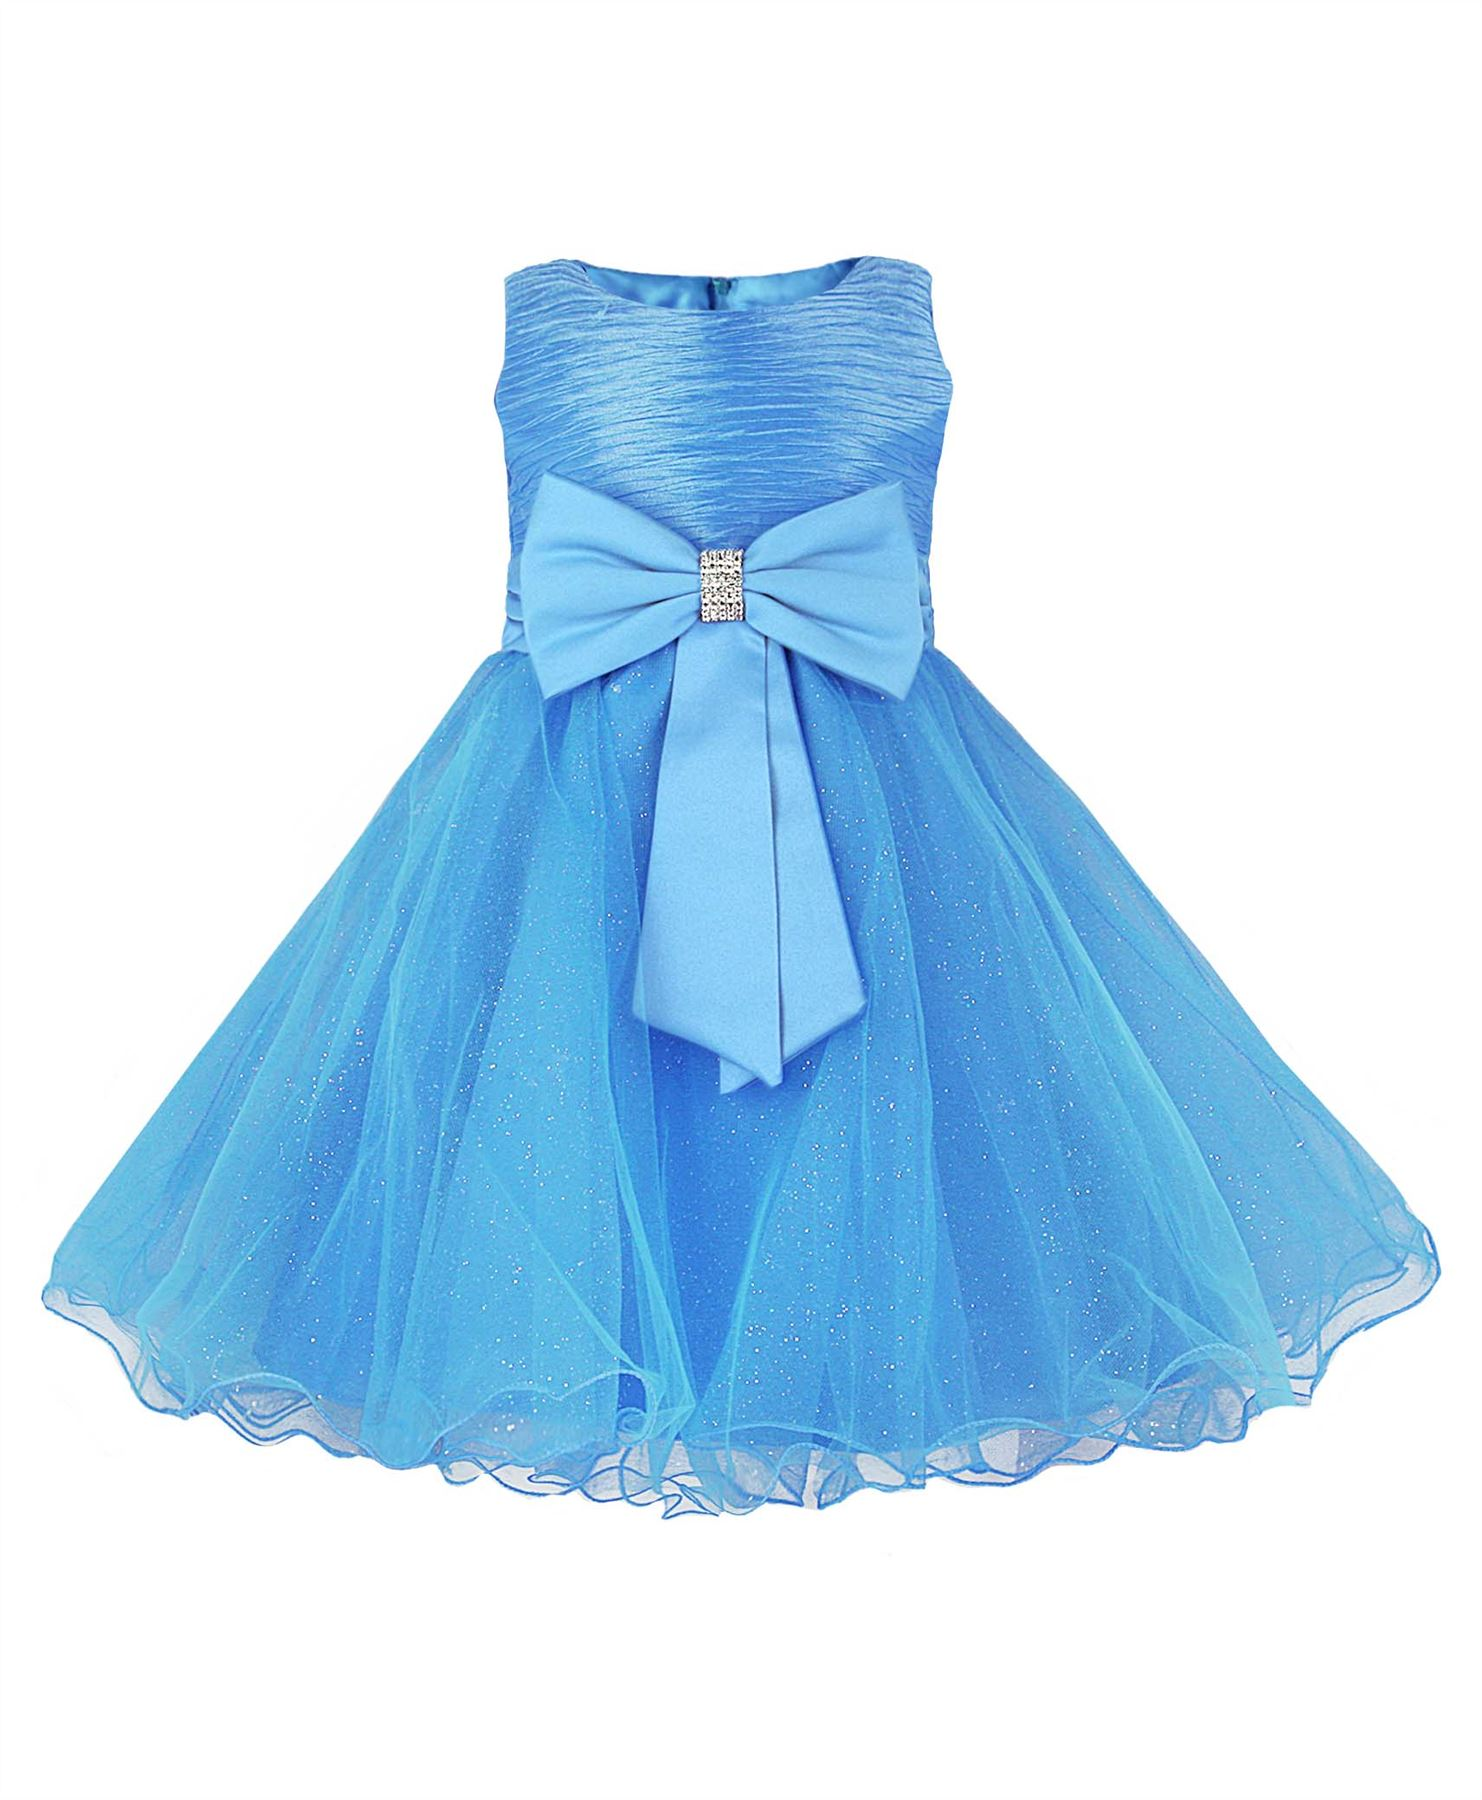 GIRLS PARTY DRESSES BOW DETAIL FLOWER GIRL WEDDING PAGEANT ...